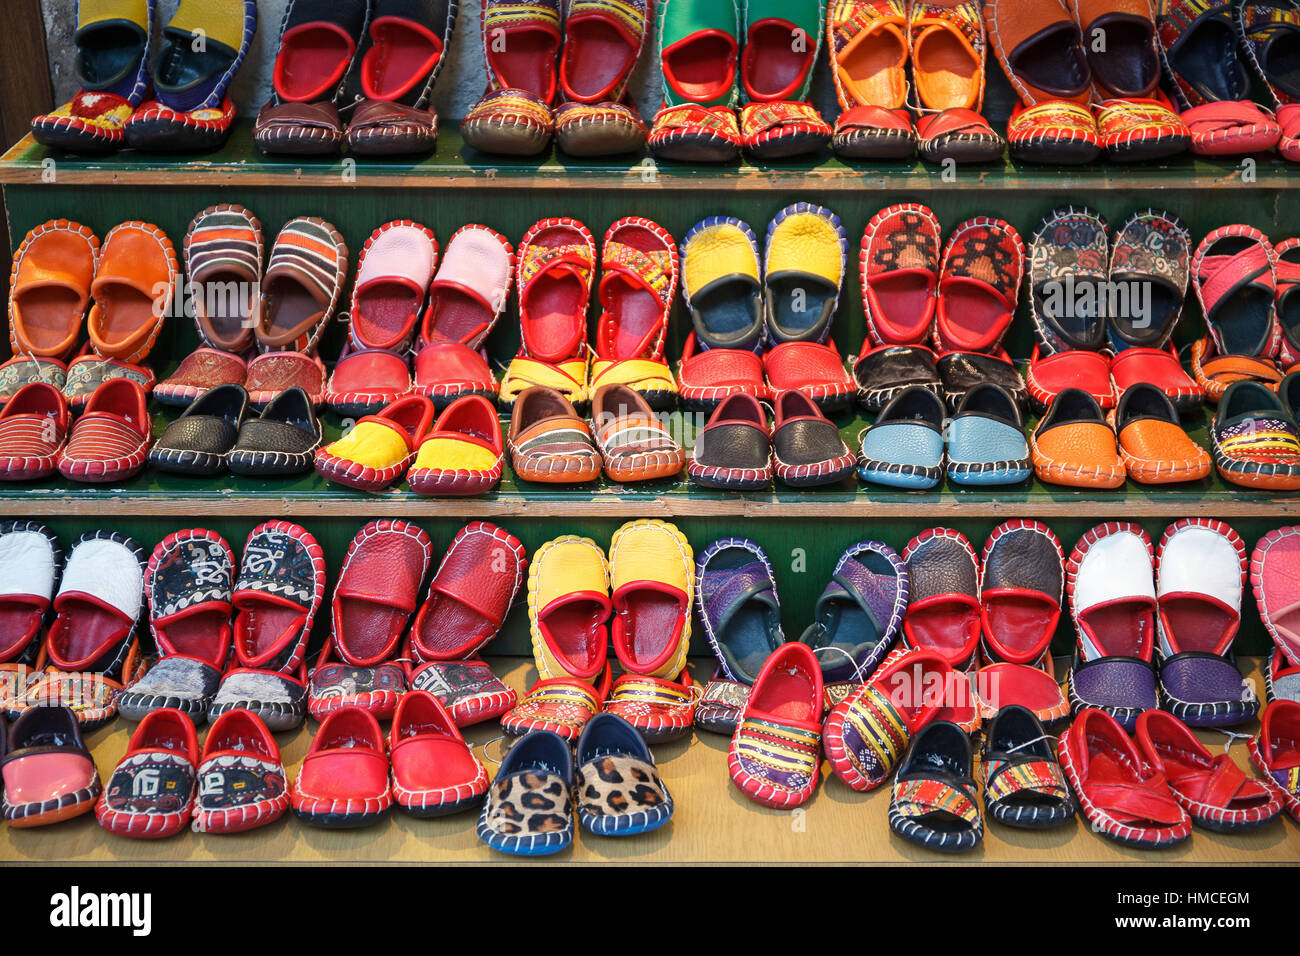 Colorful handmade leather shoes in Turkey - Stock Image